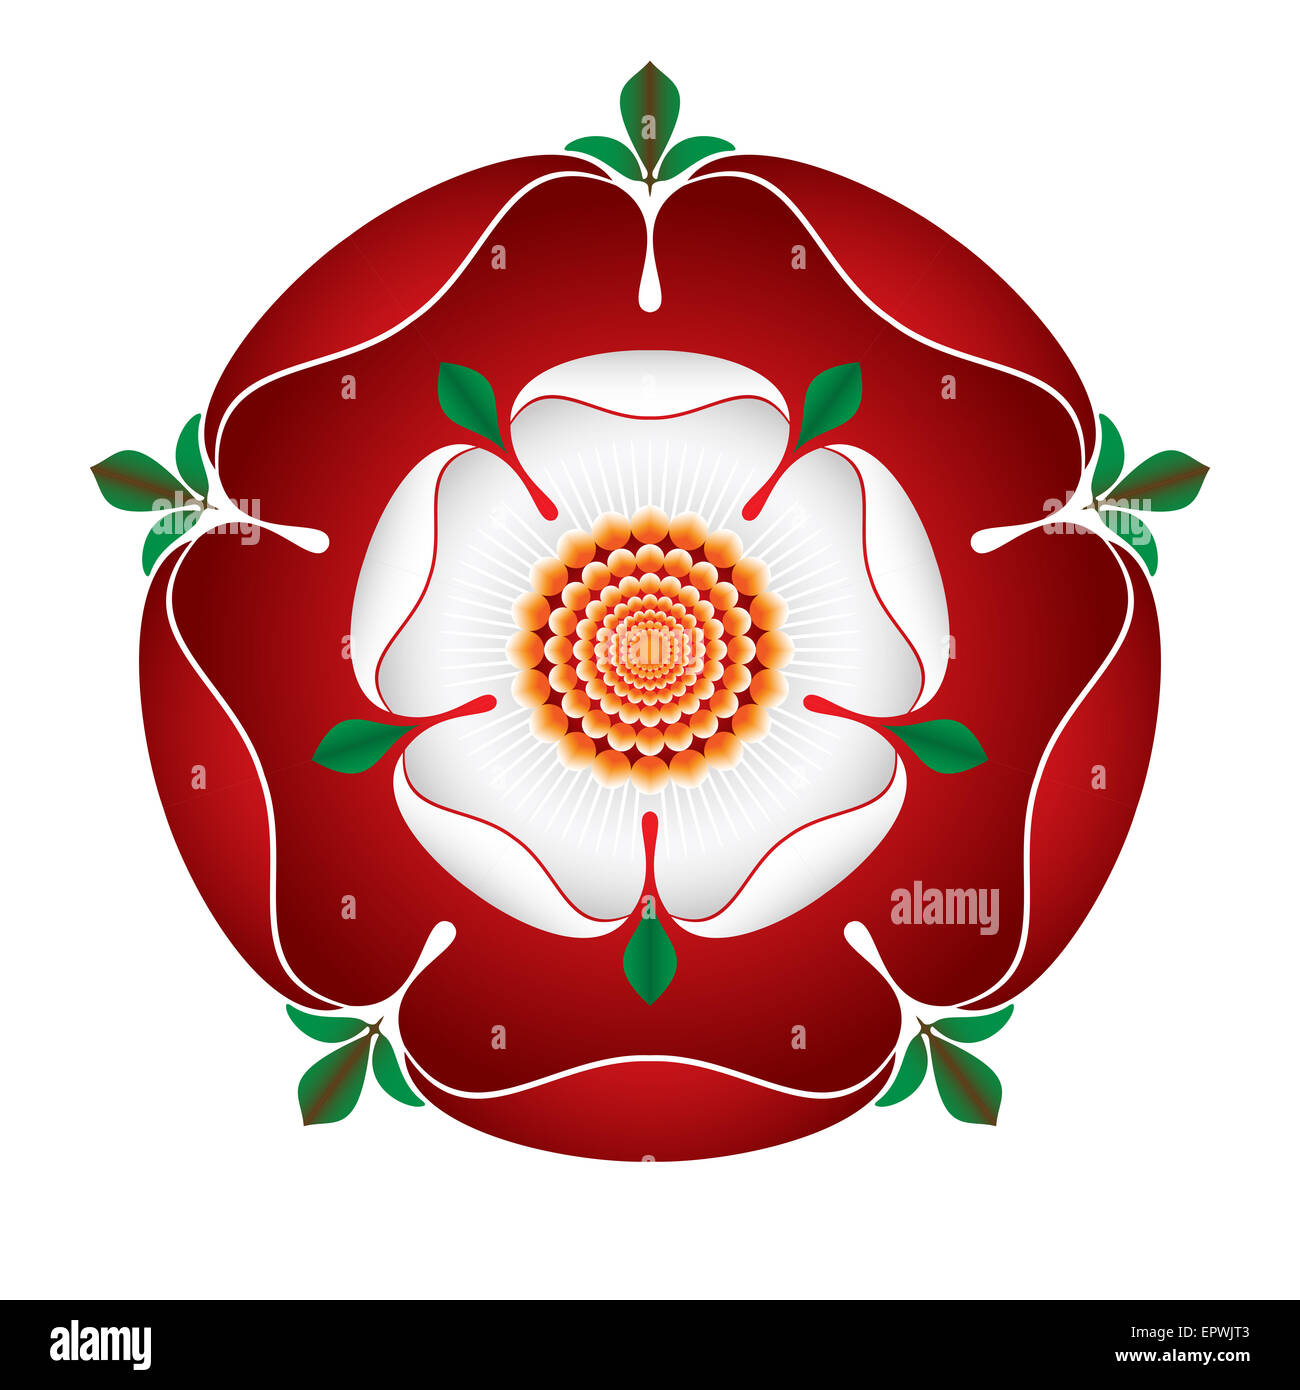 tudor dynasty rose shaded illustration english symbol red rose stock photo royalty free. Black Bedroom Furniture Sets. Home Design Ideas